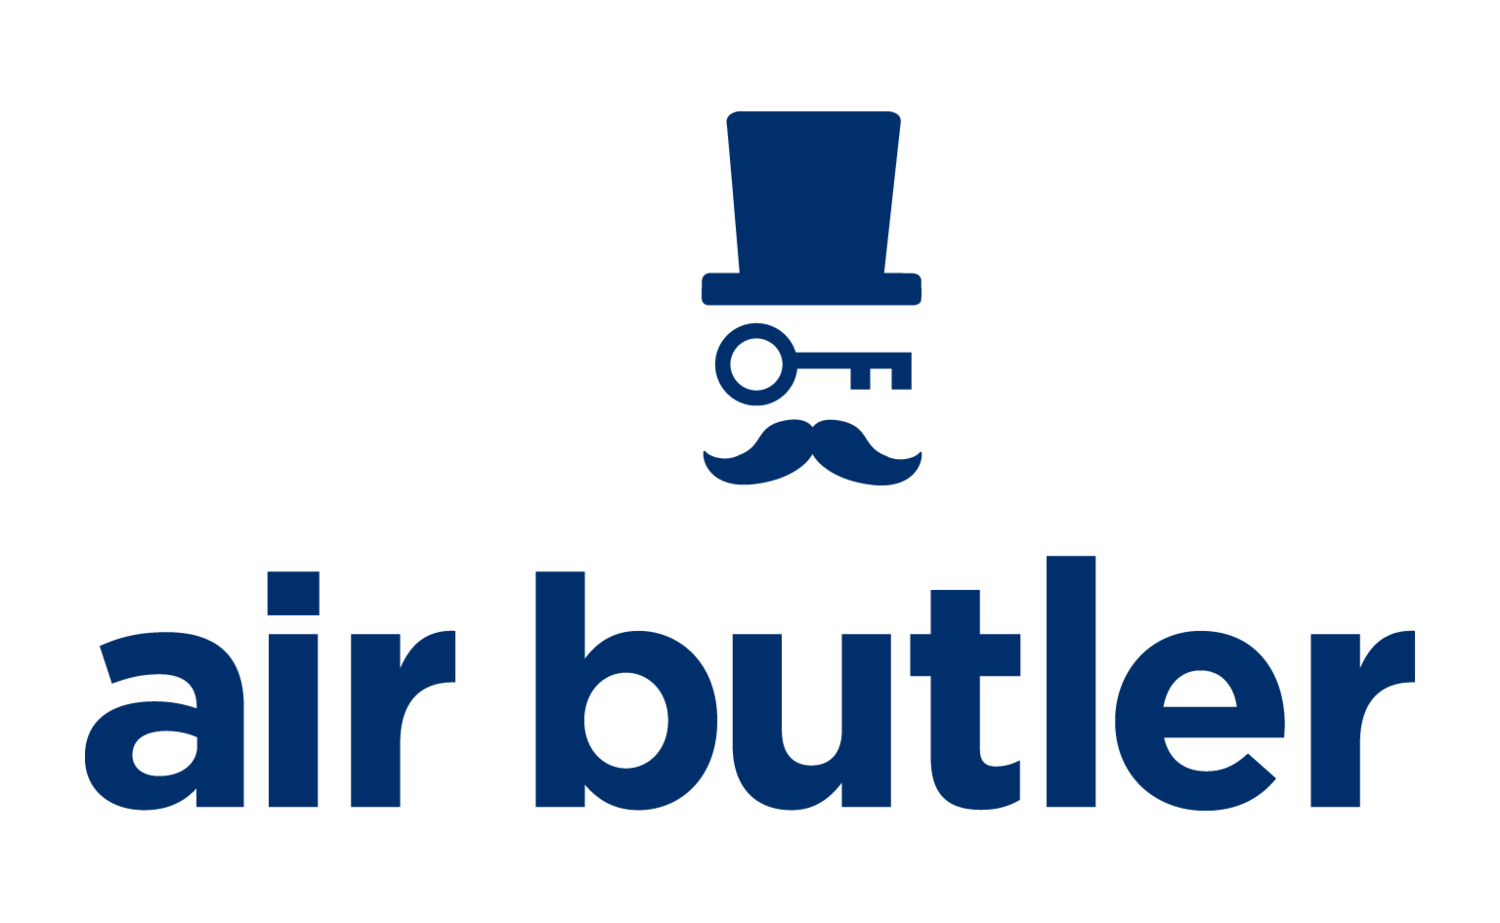 AirButler